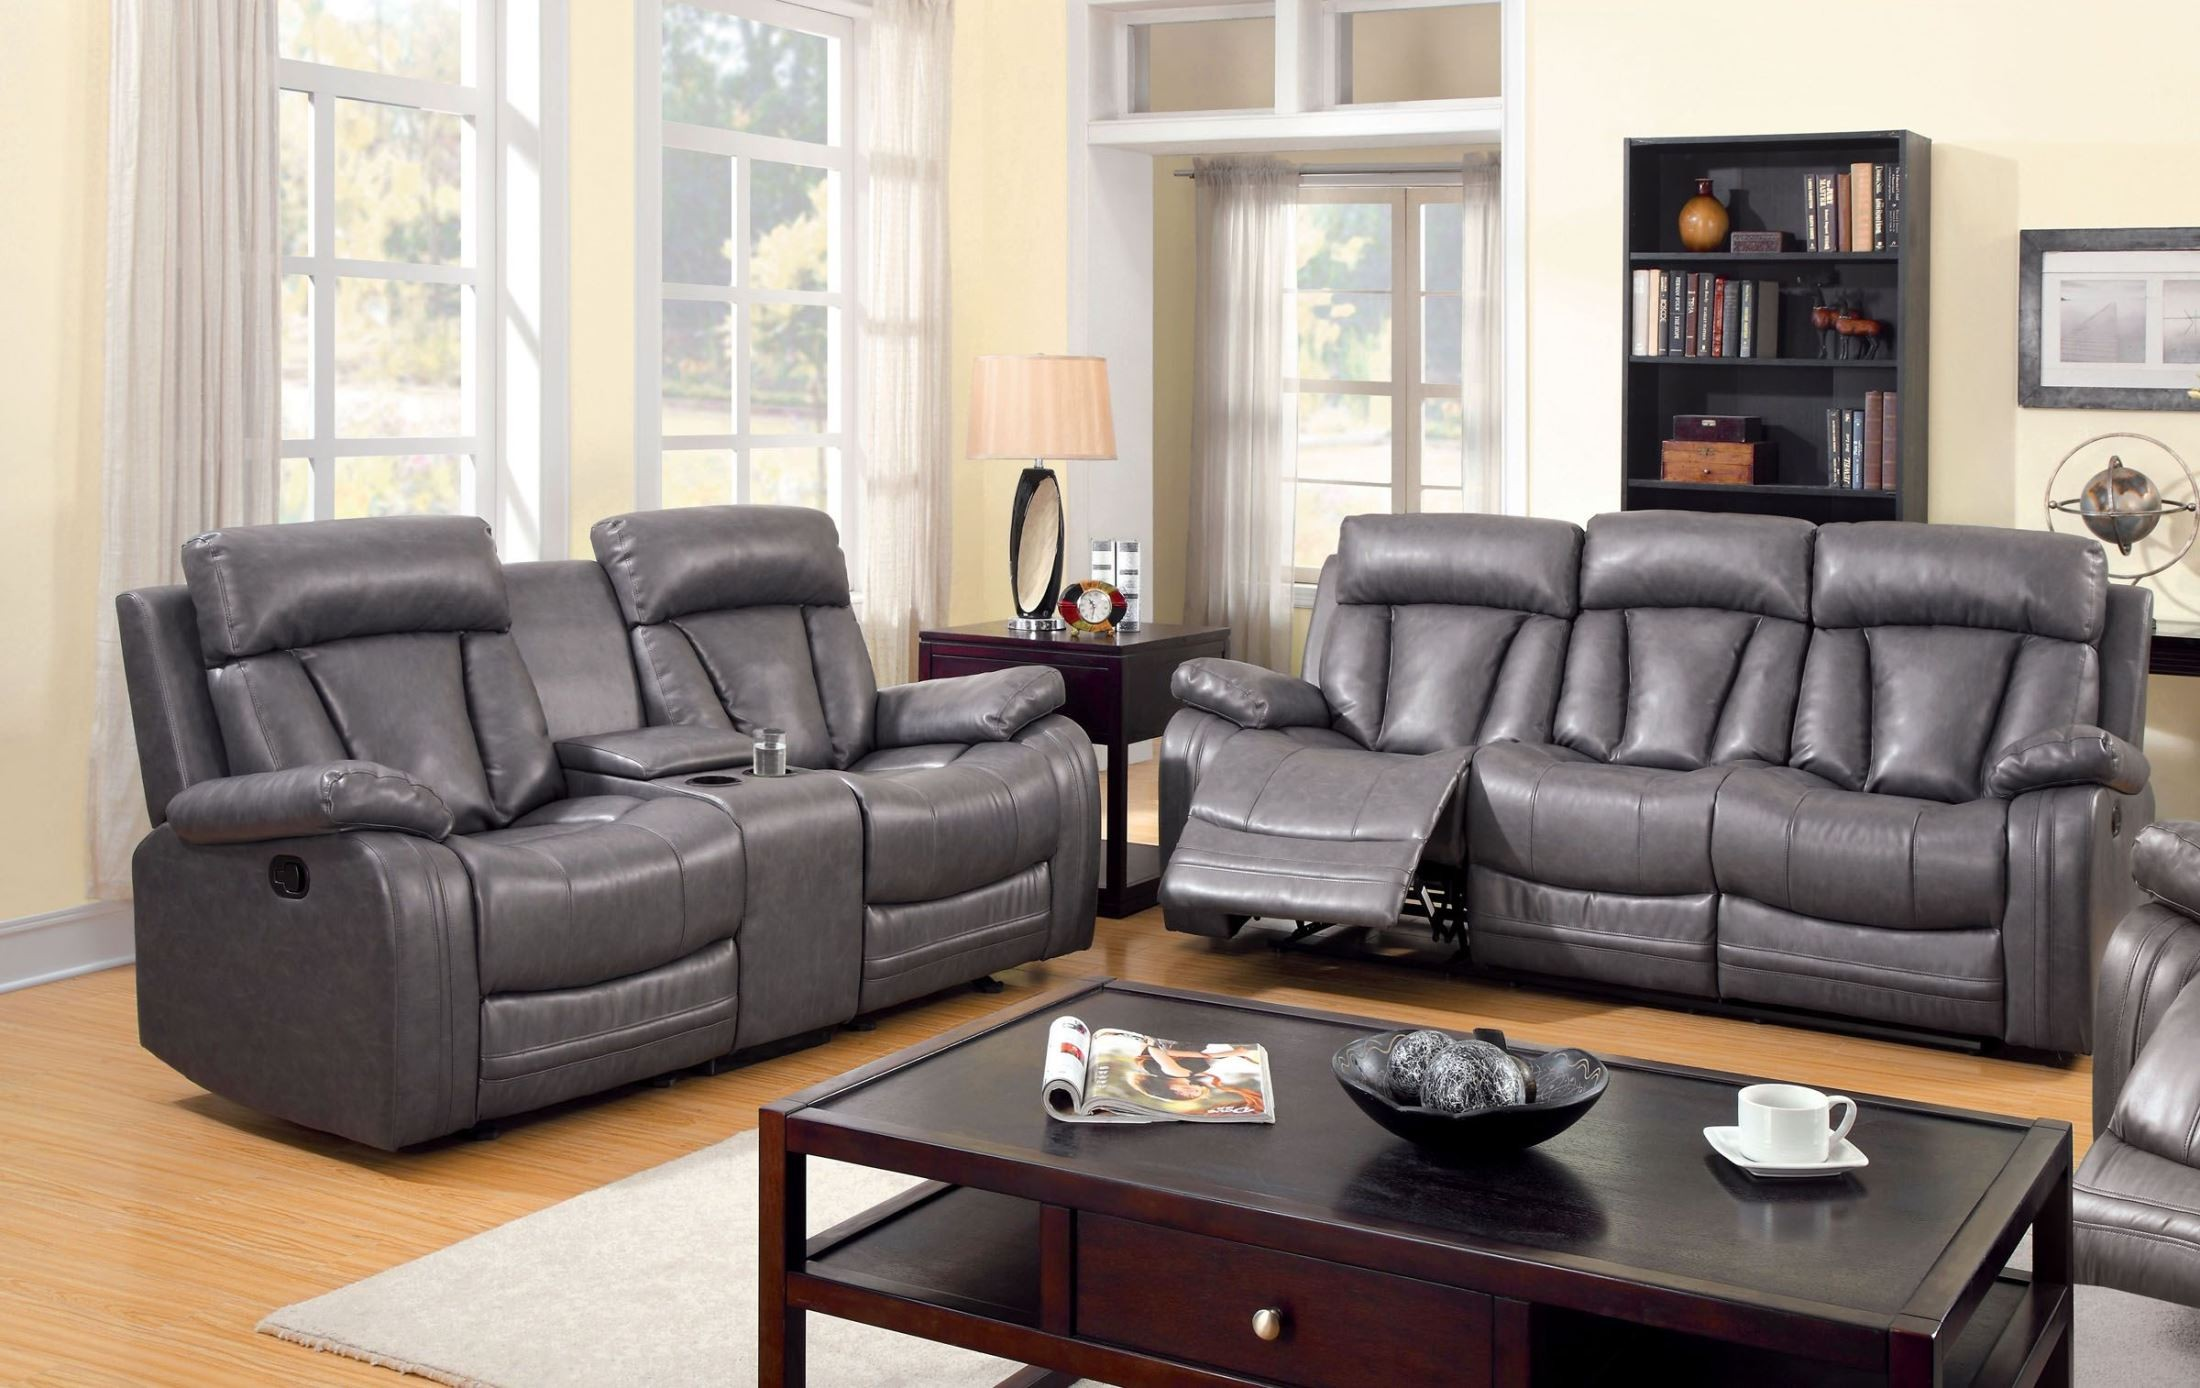 Guilford gray bonded leather reclining living room set Reclining living room furniture